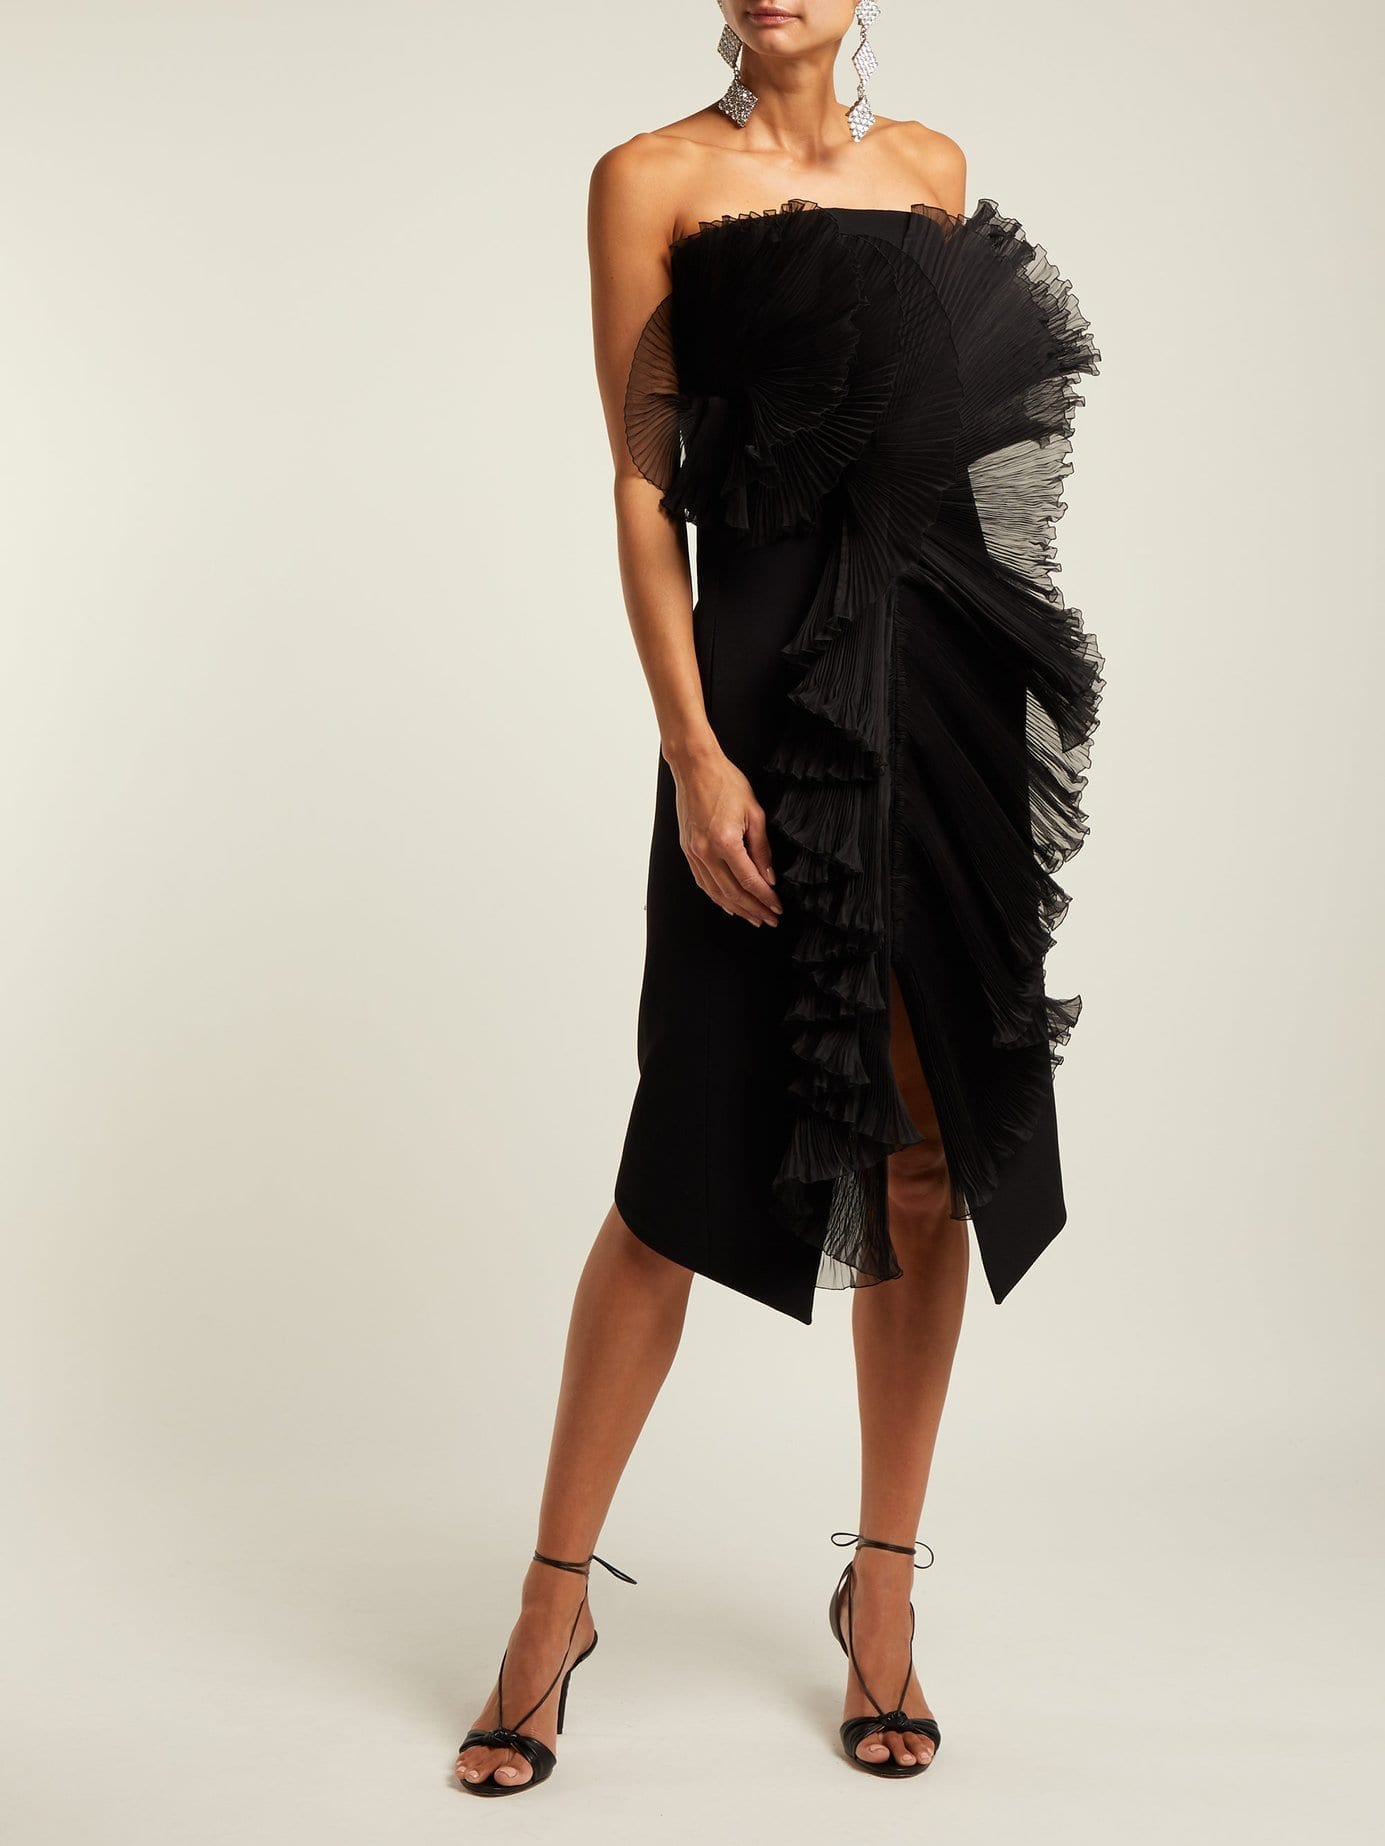 GIVENCHY Strapless Ruffle Trimmed Wool Midi Black Dress